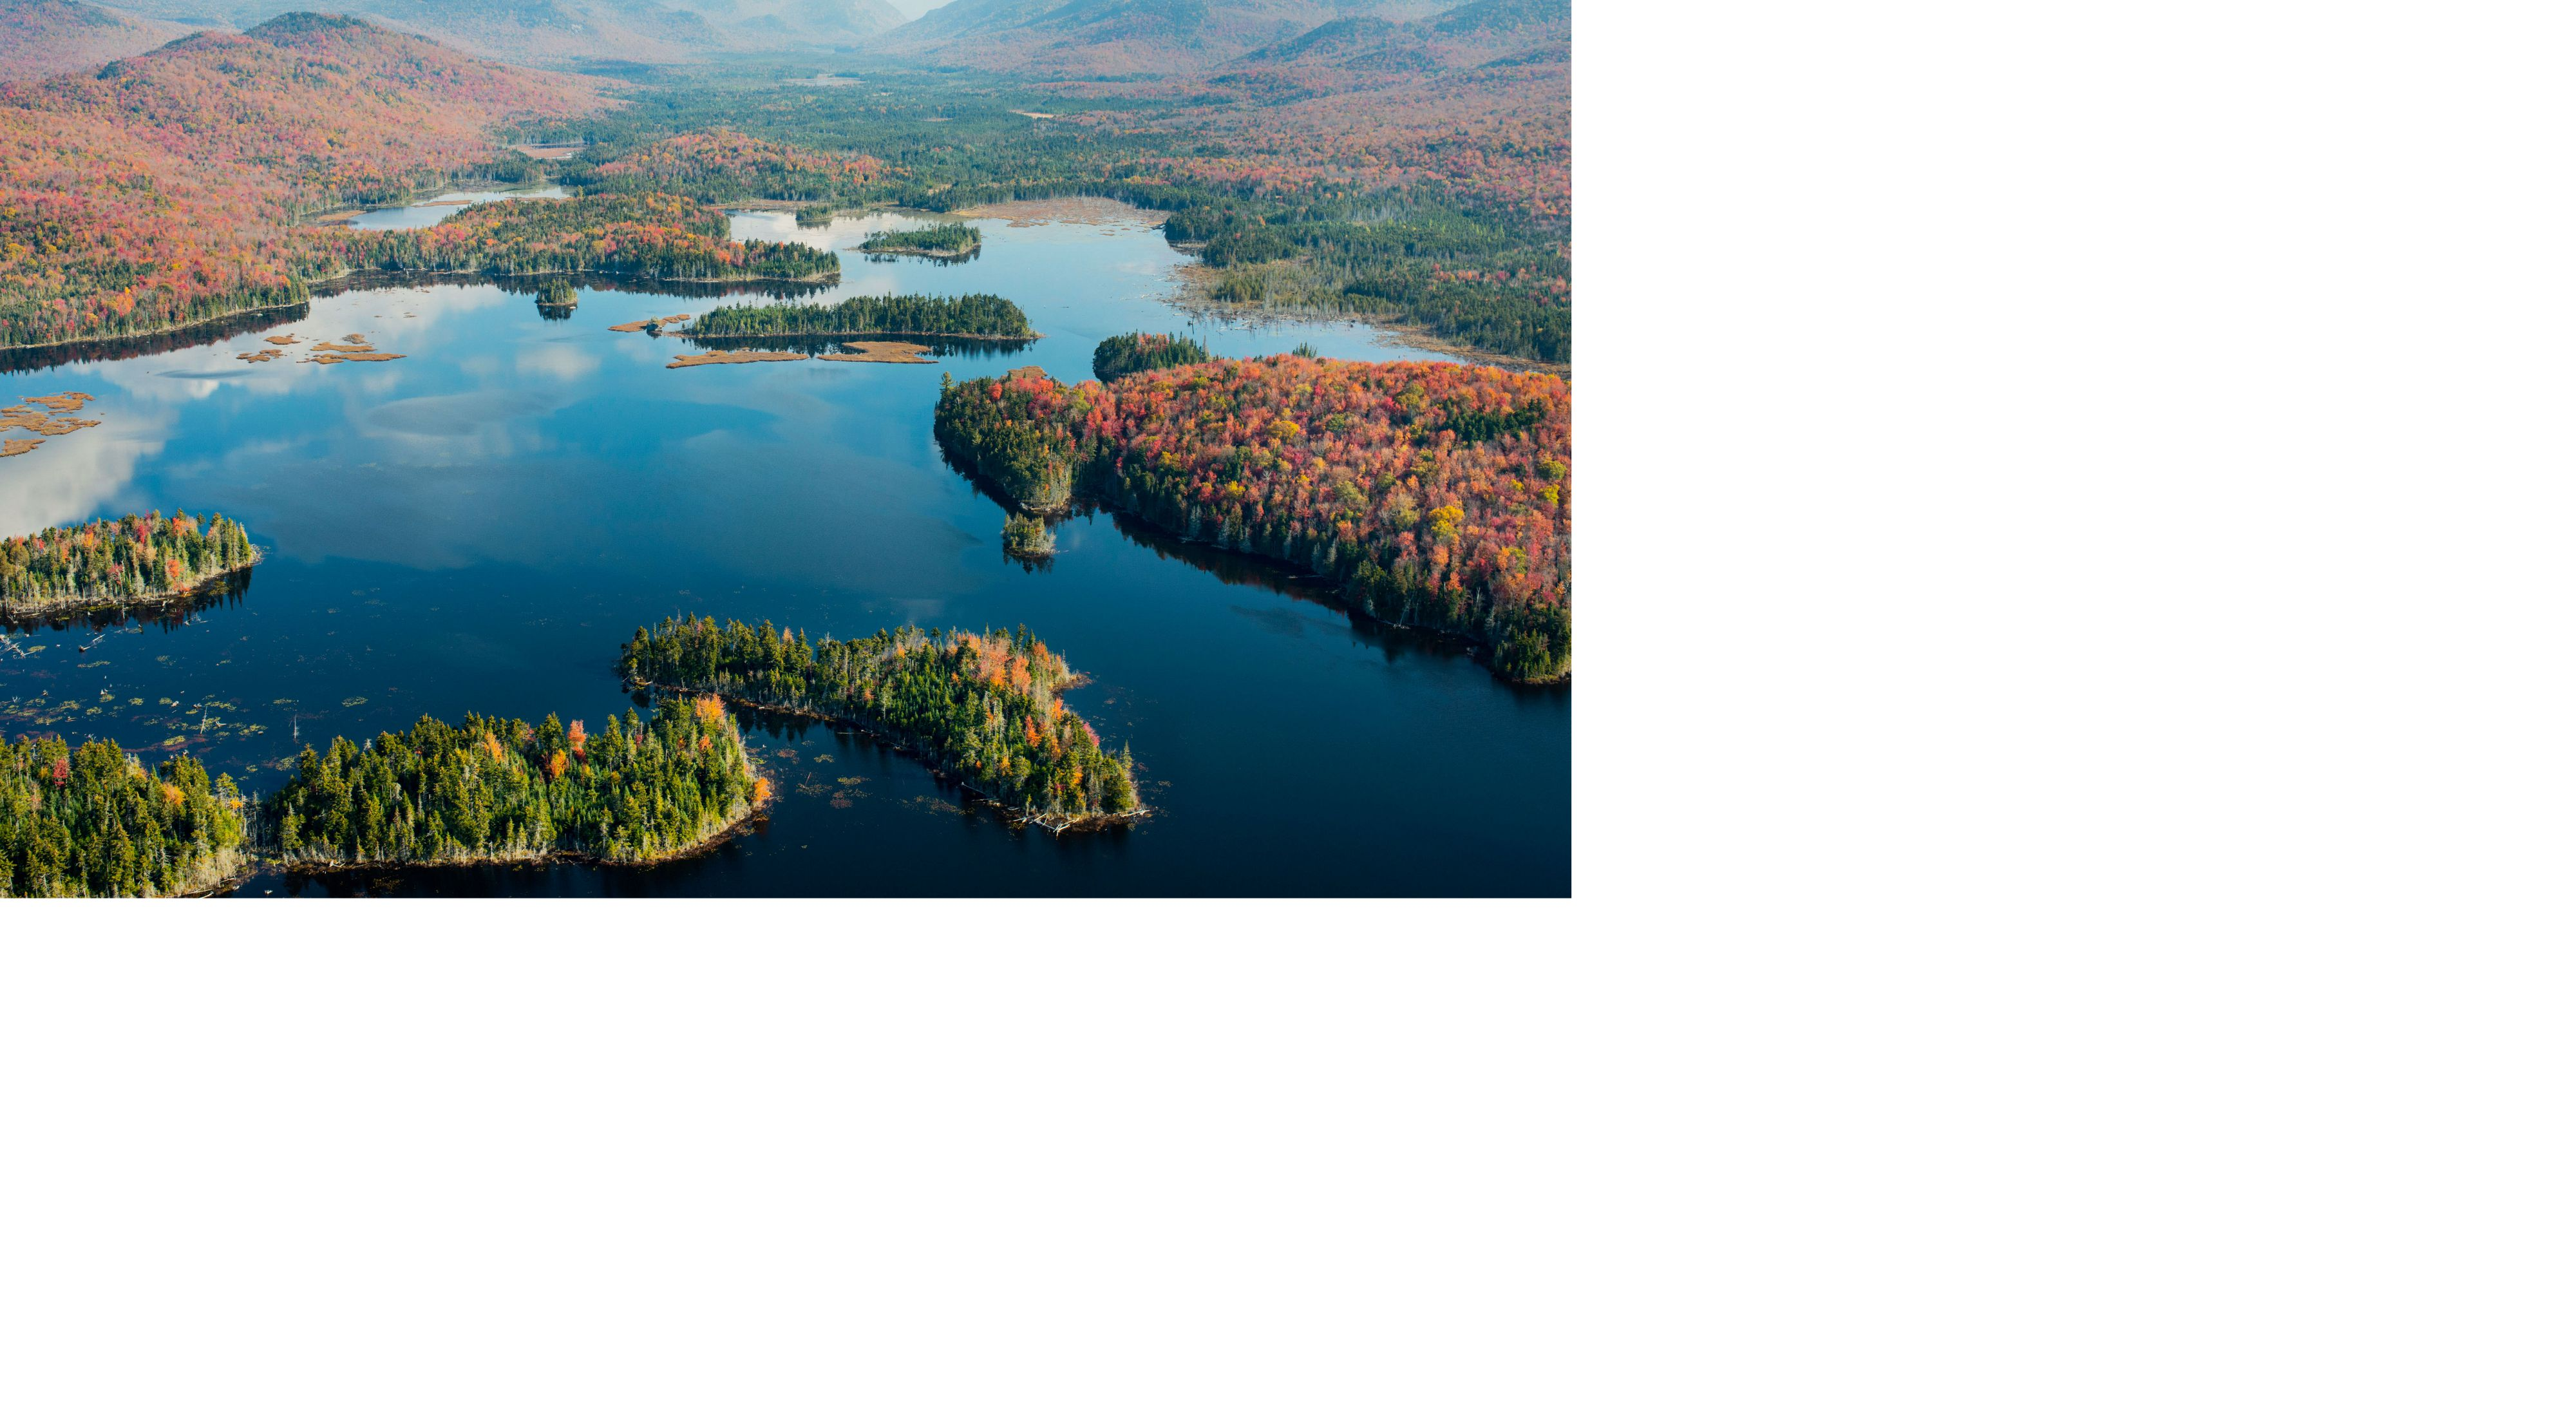 Aerial view of Boreas Pond, New York.